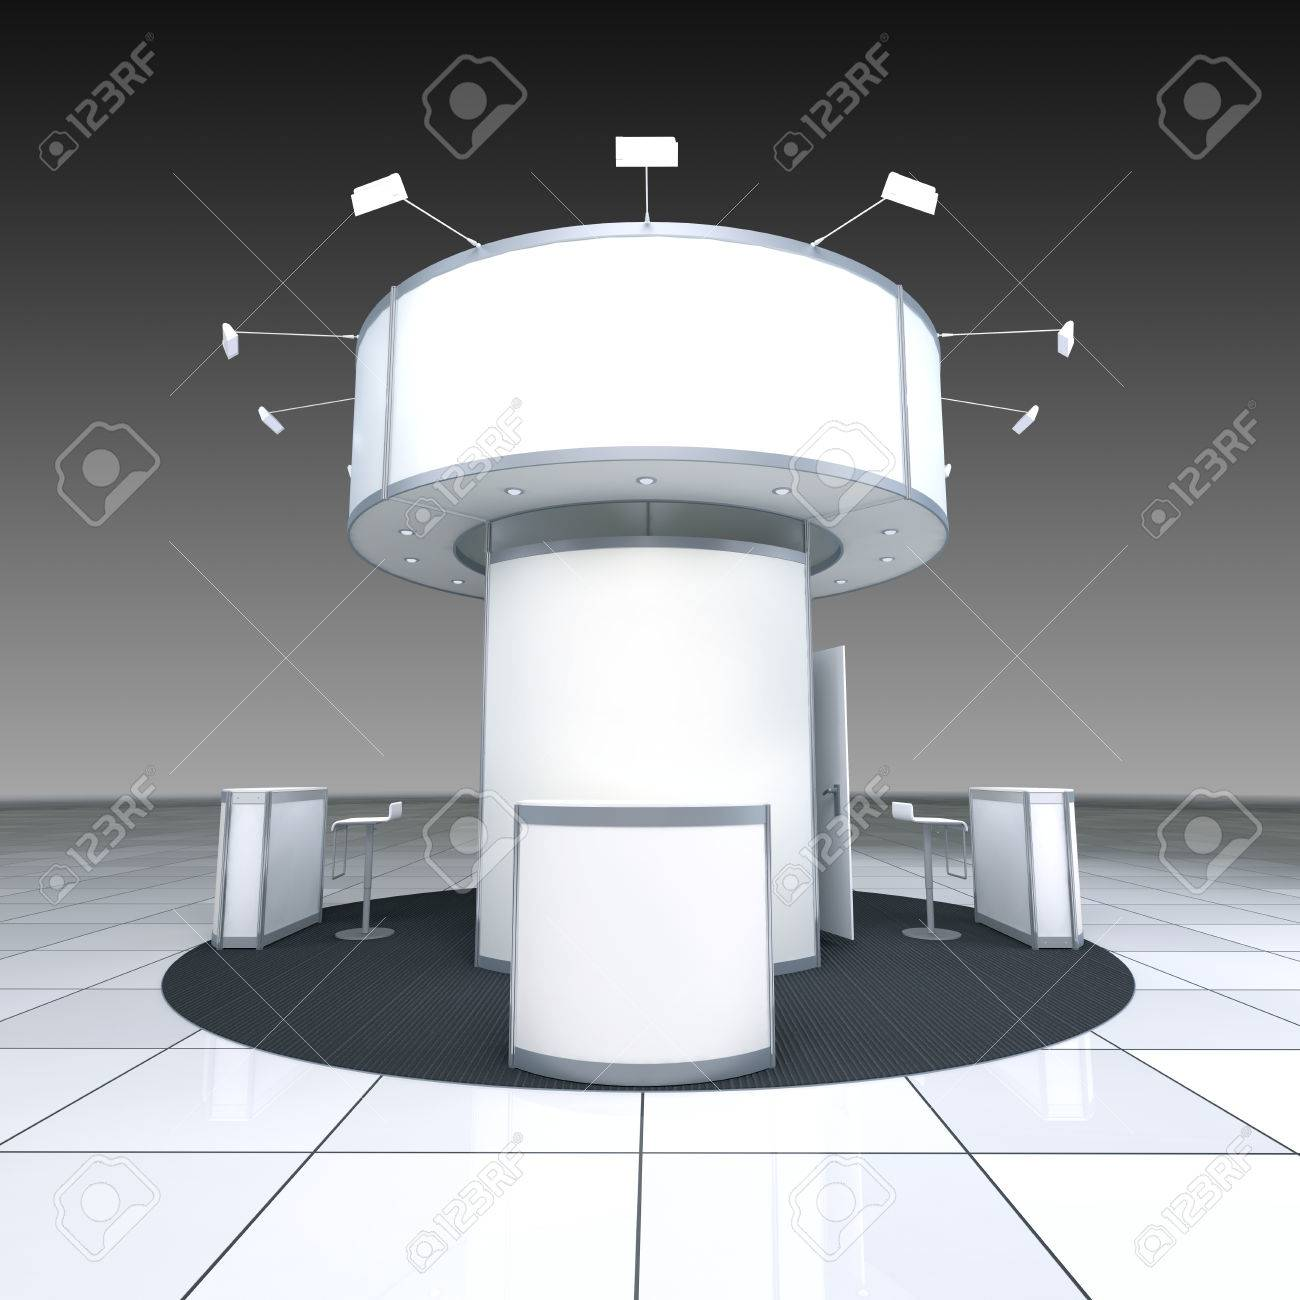 Simple Exhibition Stand : Abstract simple exhibition stand with radial blank frieze stock